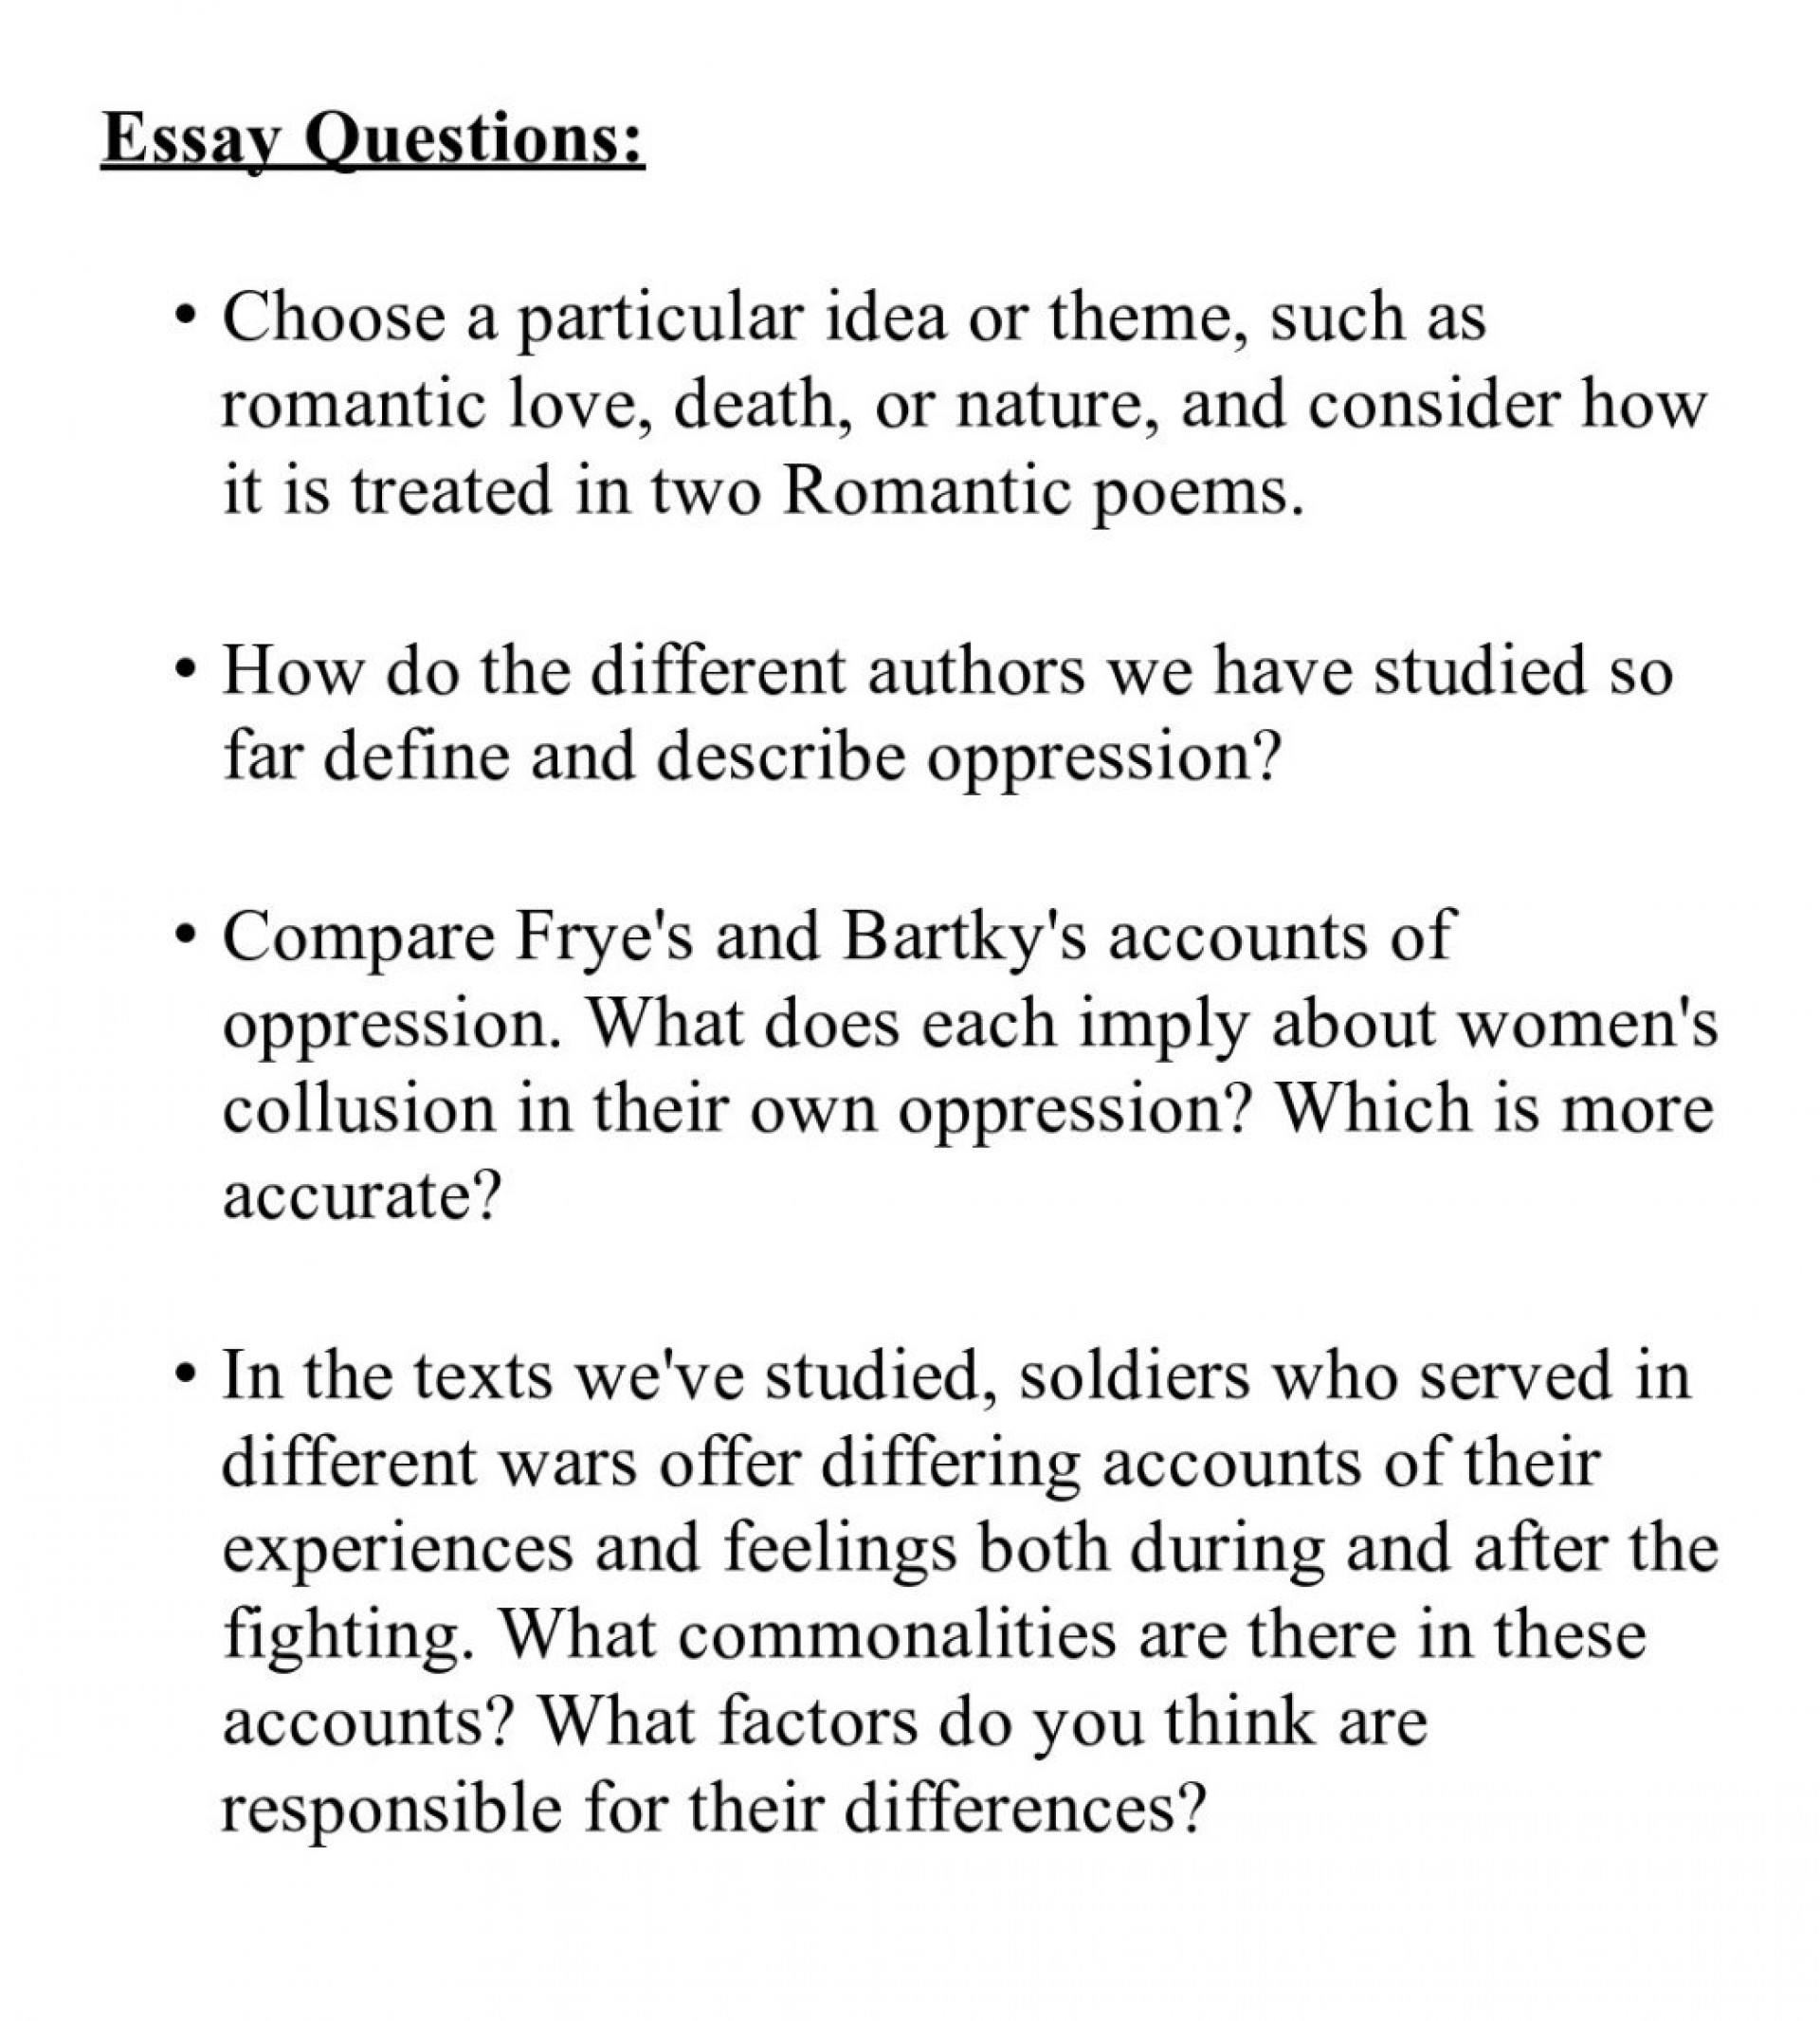 011 Virginia Tech Essays Sample Of Evaluation Essay Questions For Ques 1048x1164 Phenomenal Reddit Prompts 2018 Sat Requirements 1920